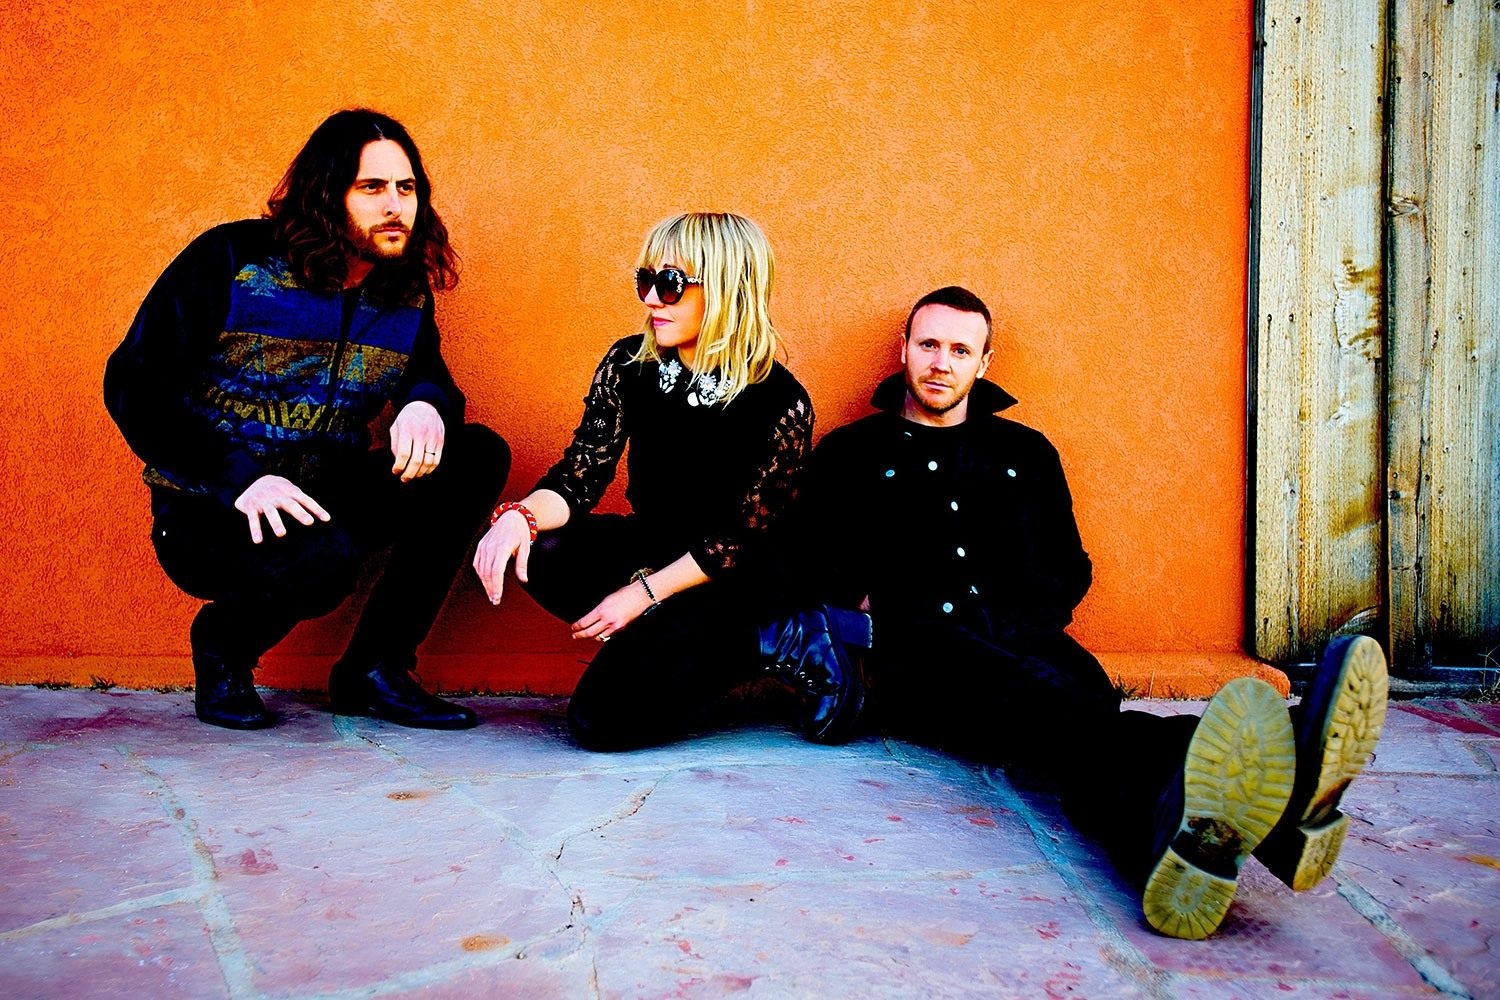 Check out The Joy Formidable's Teenage Kicks playlist, feat. Radiohead, Elvis Costello, Daft Punk and more